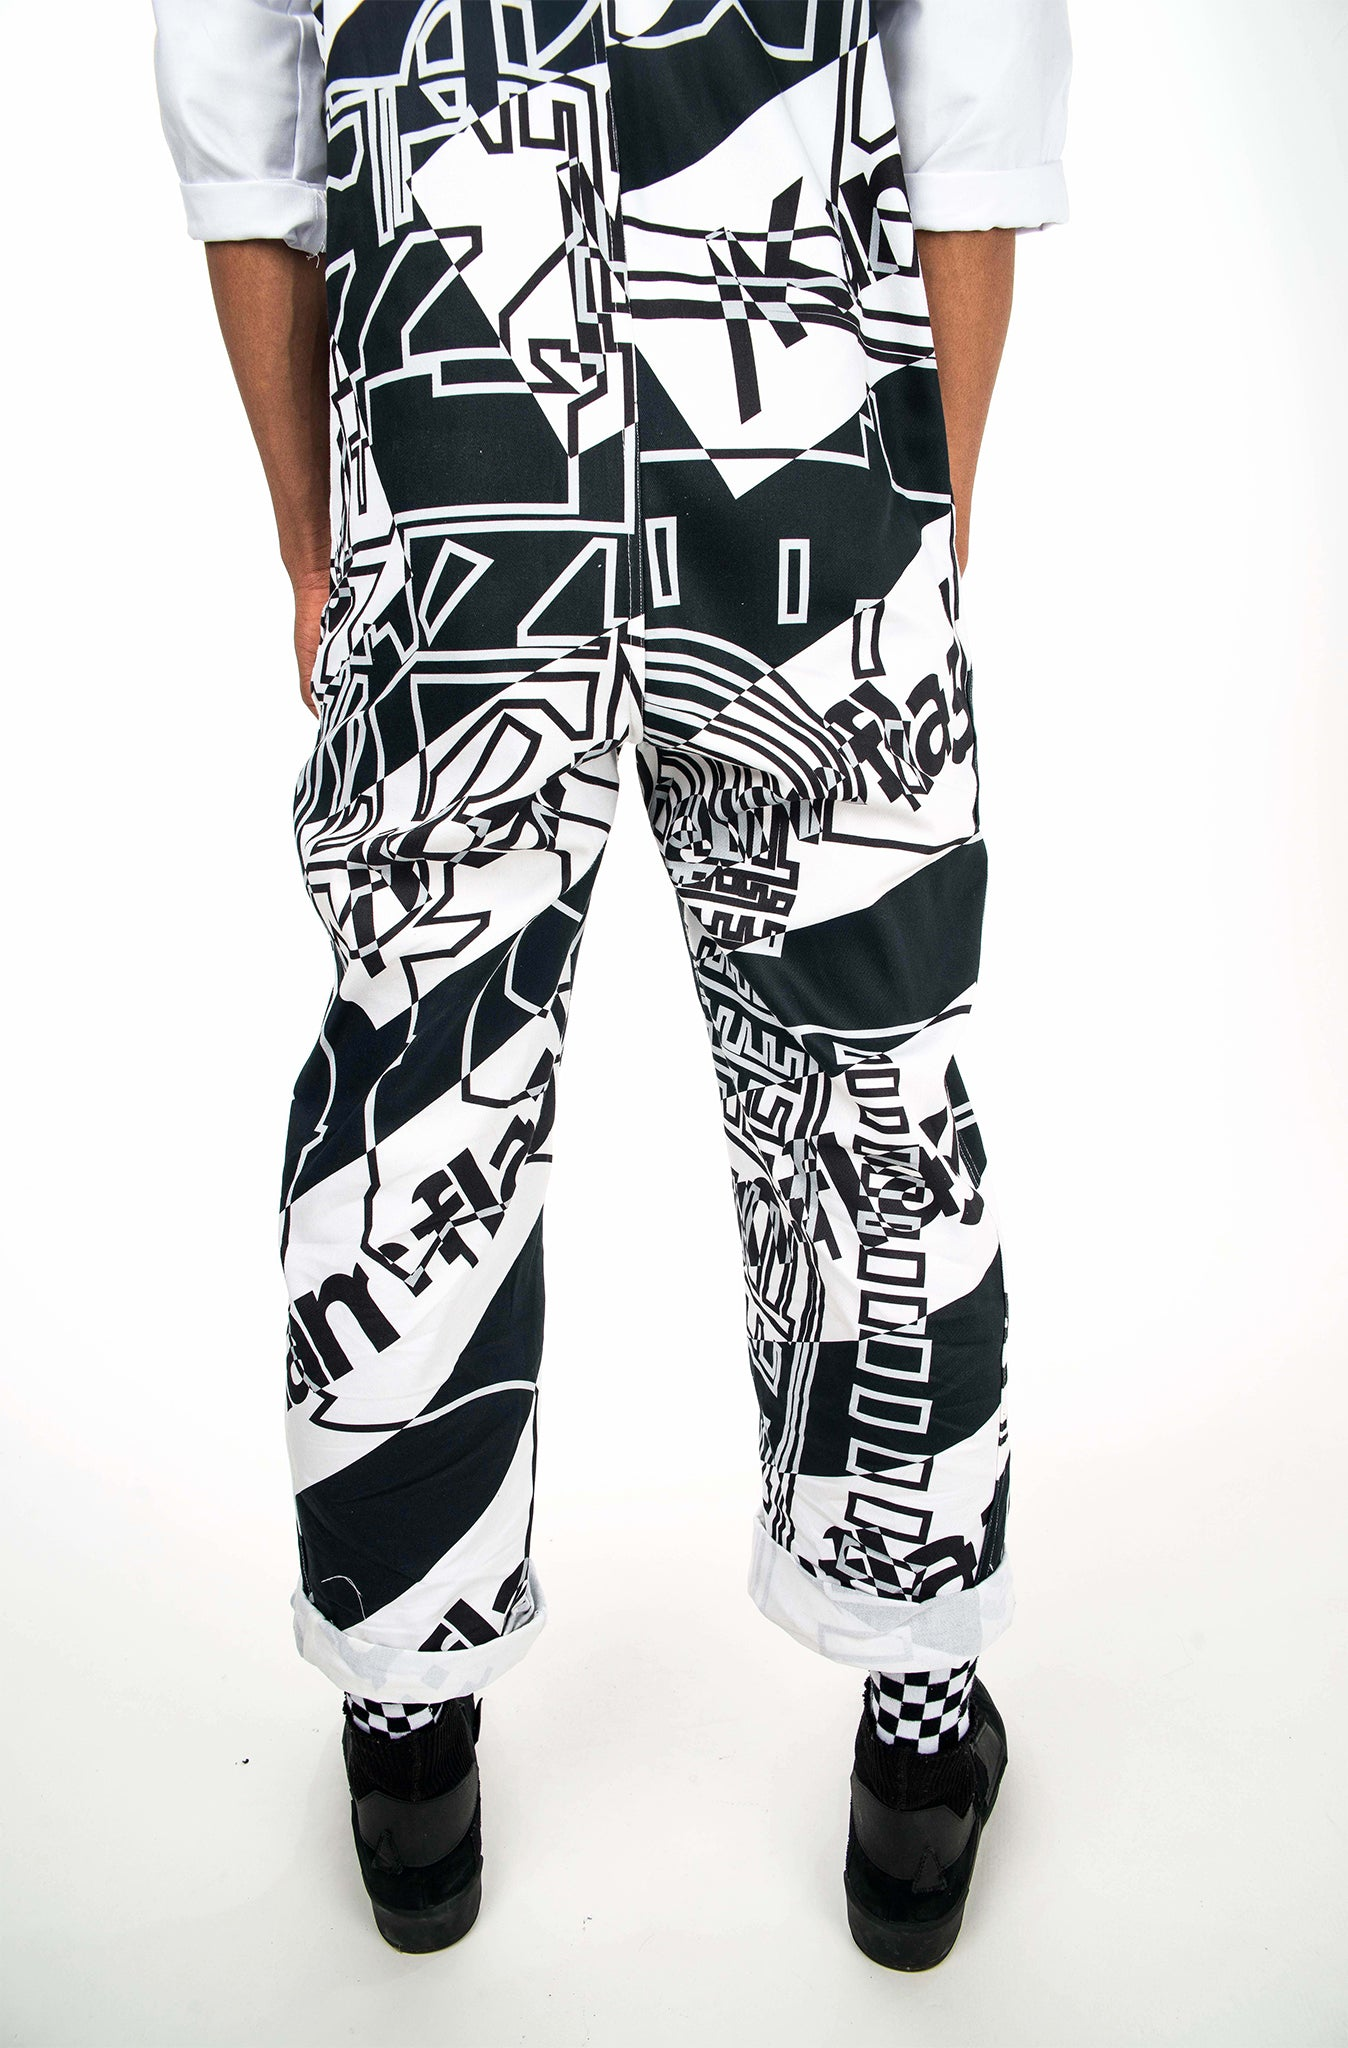 Kam0 Eye catching, hand made street wear boiler suit, British made high fashion that stands out.